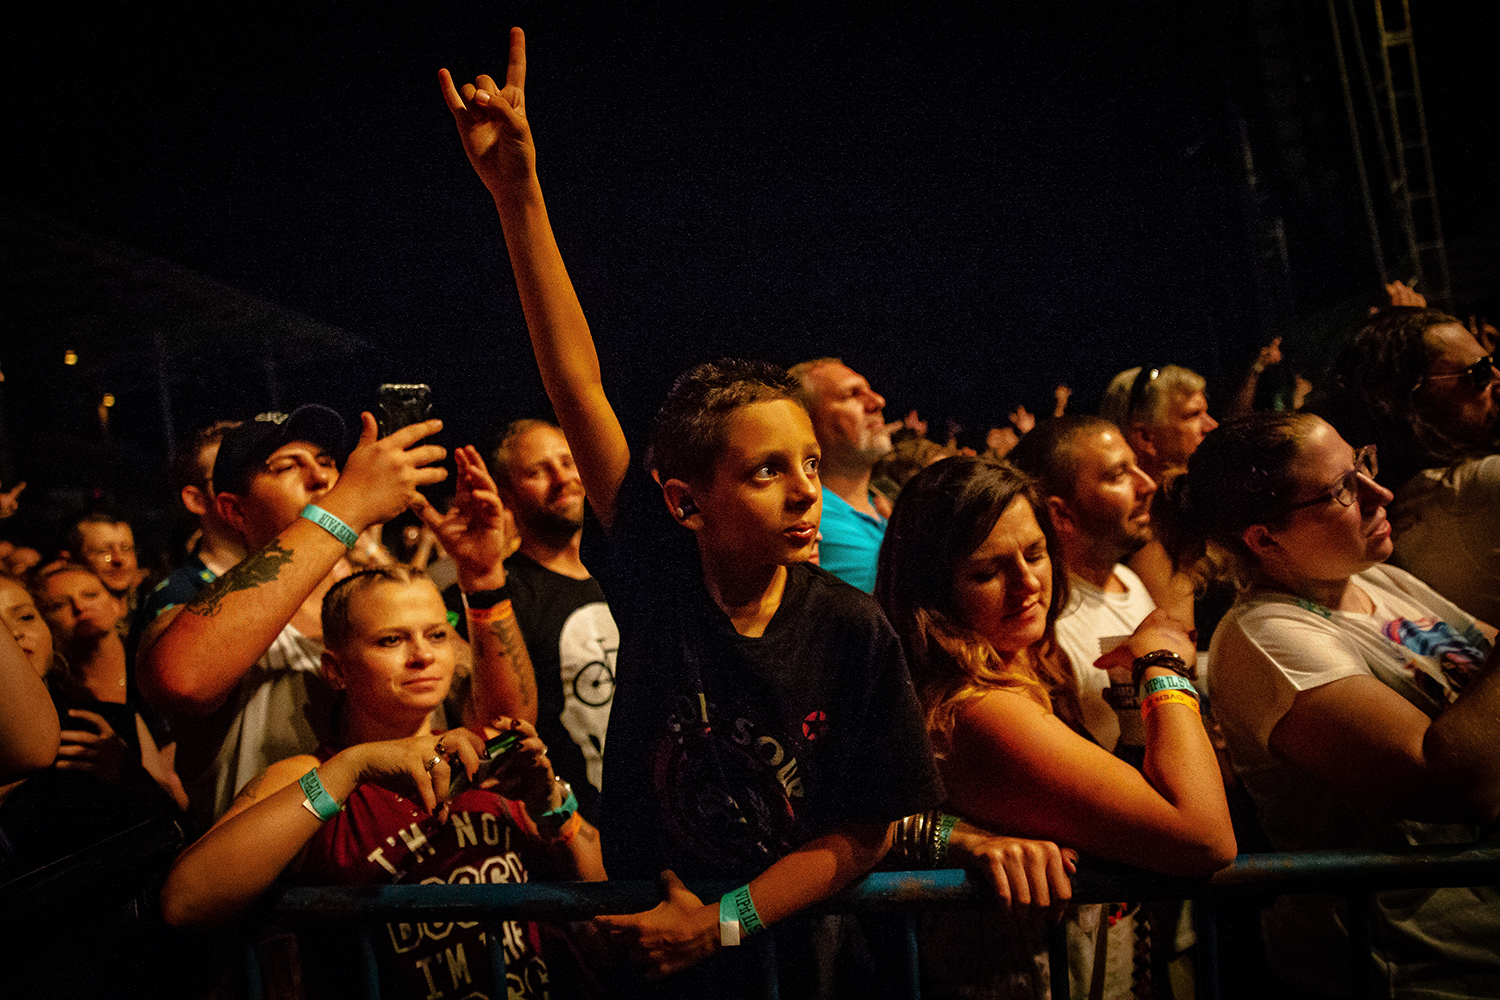 Young fans cheer on the band Halestorm as they perform on the Grandstand Stage during the Illinois State Fair, Saturday, Aug. 11, 2018, in Springfield, Ill. [Justin L. Fowler/The State Journal-Register]